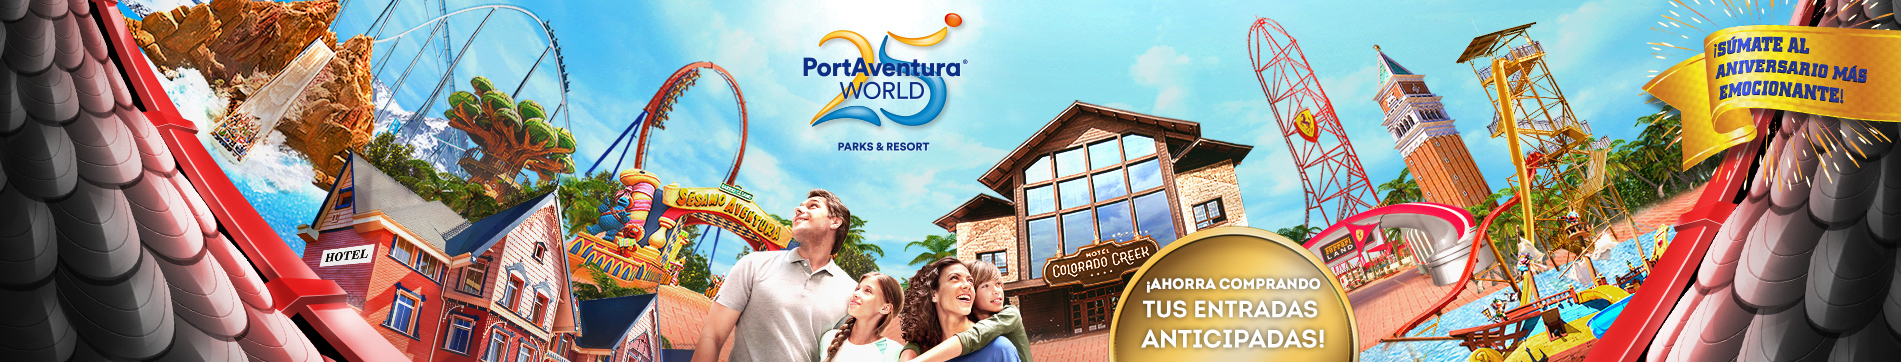 PortAventura World 2020